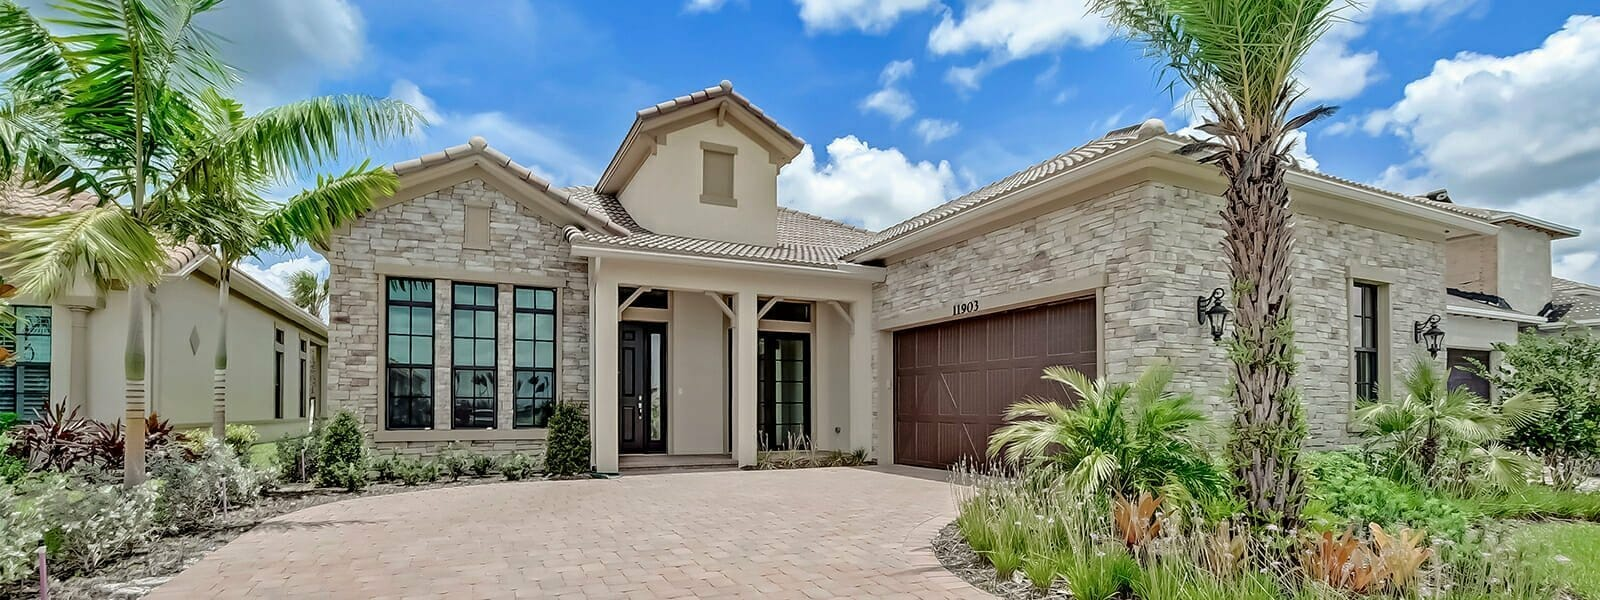 K. Hovnanian Parkland | 55+ Gated Community near Parkland FL | Active Adult